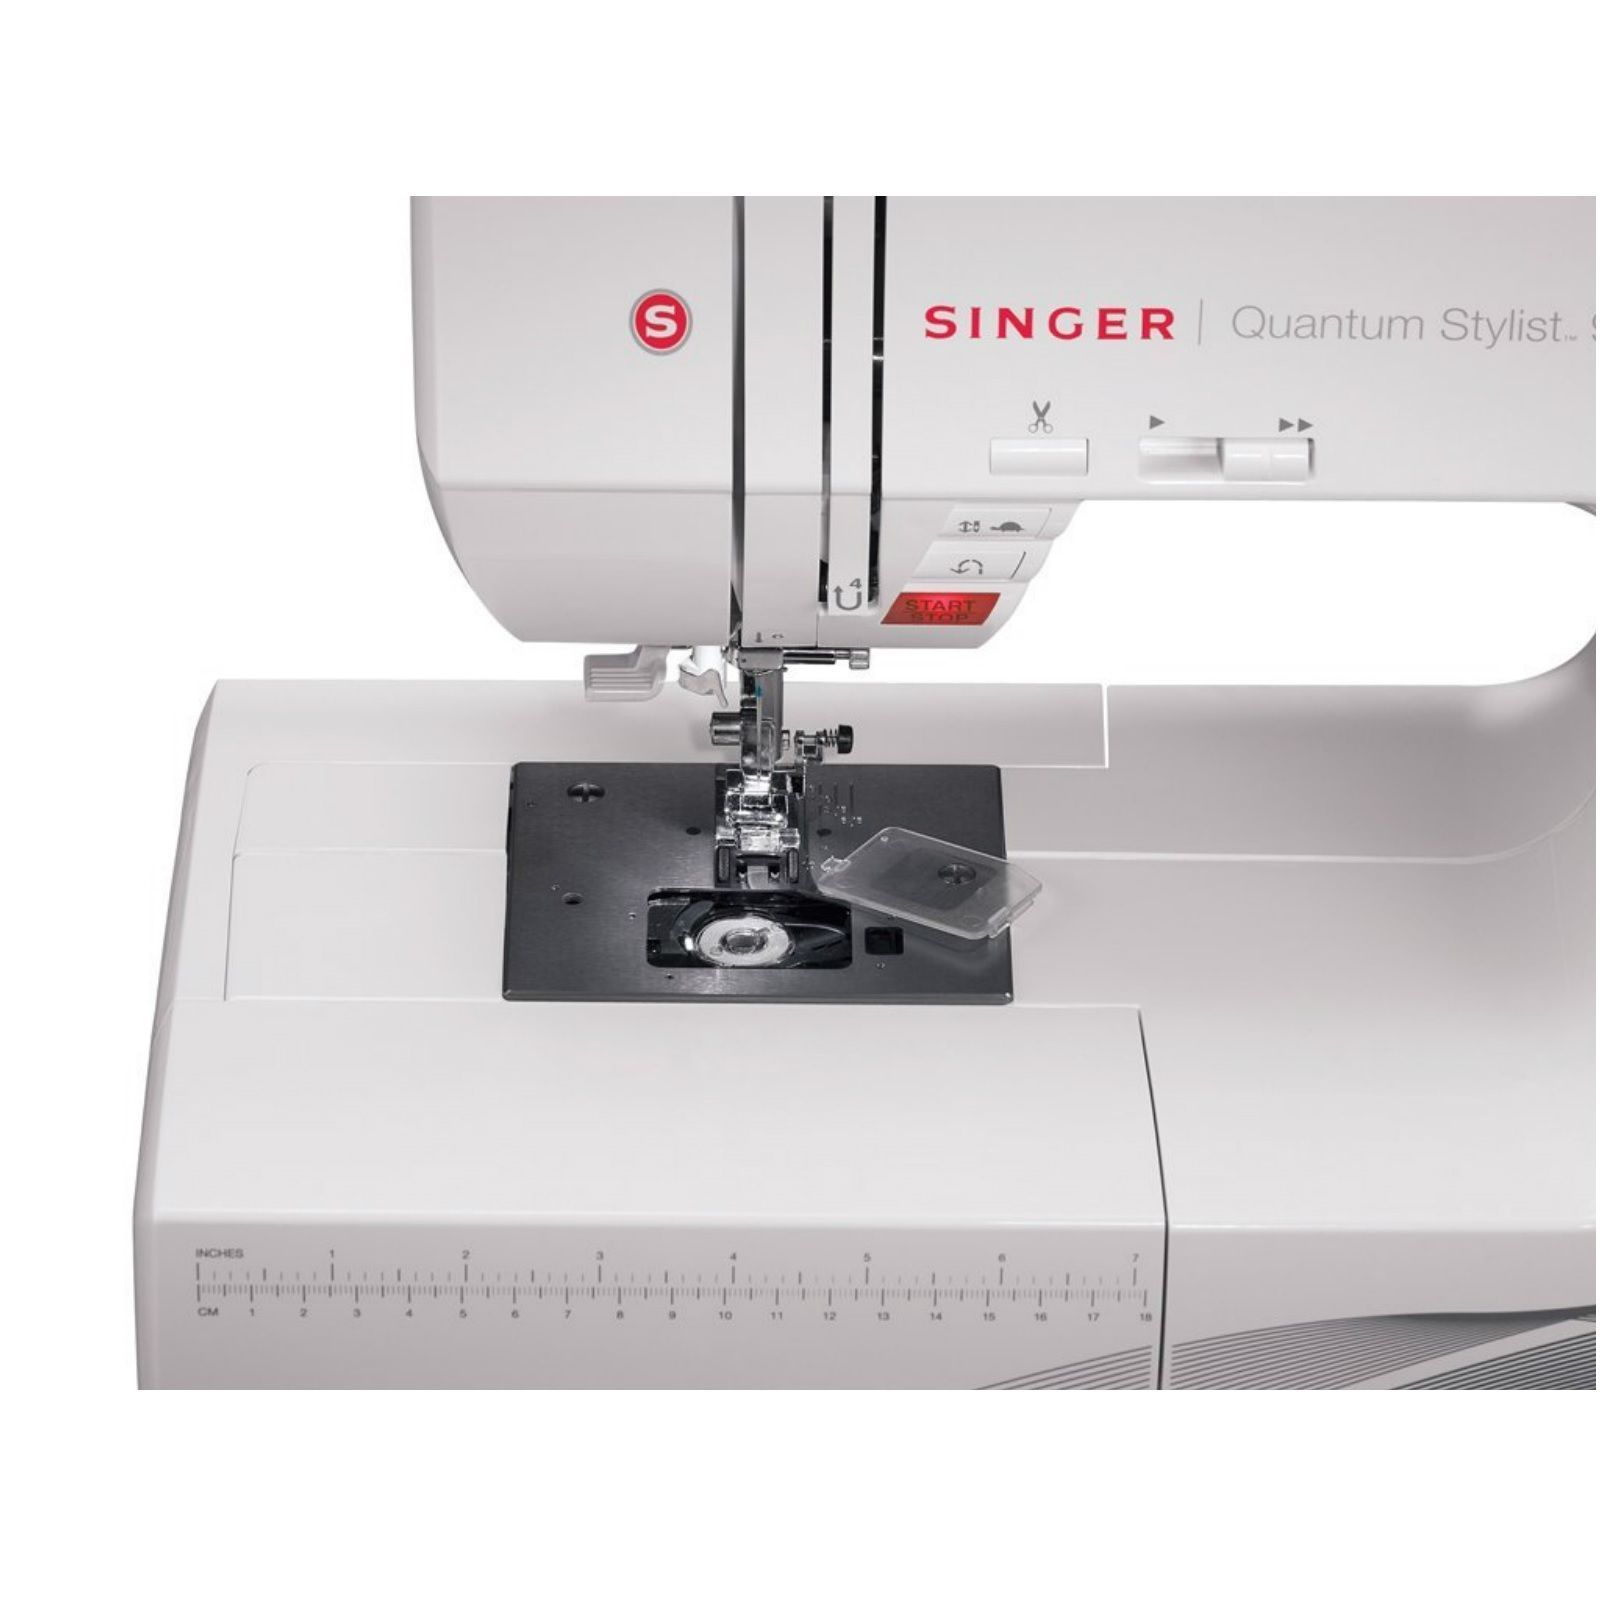 Embroidery sewing machine for quilting beginners white